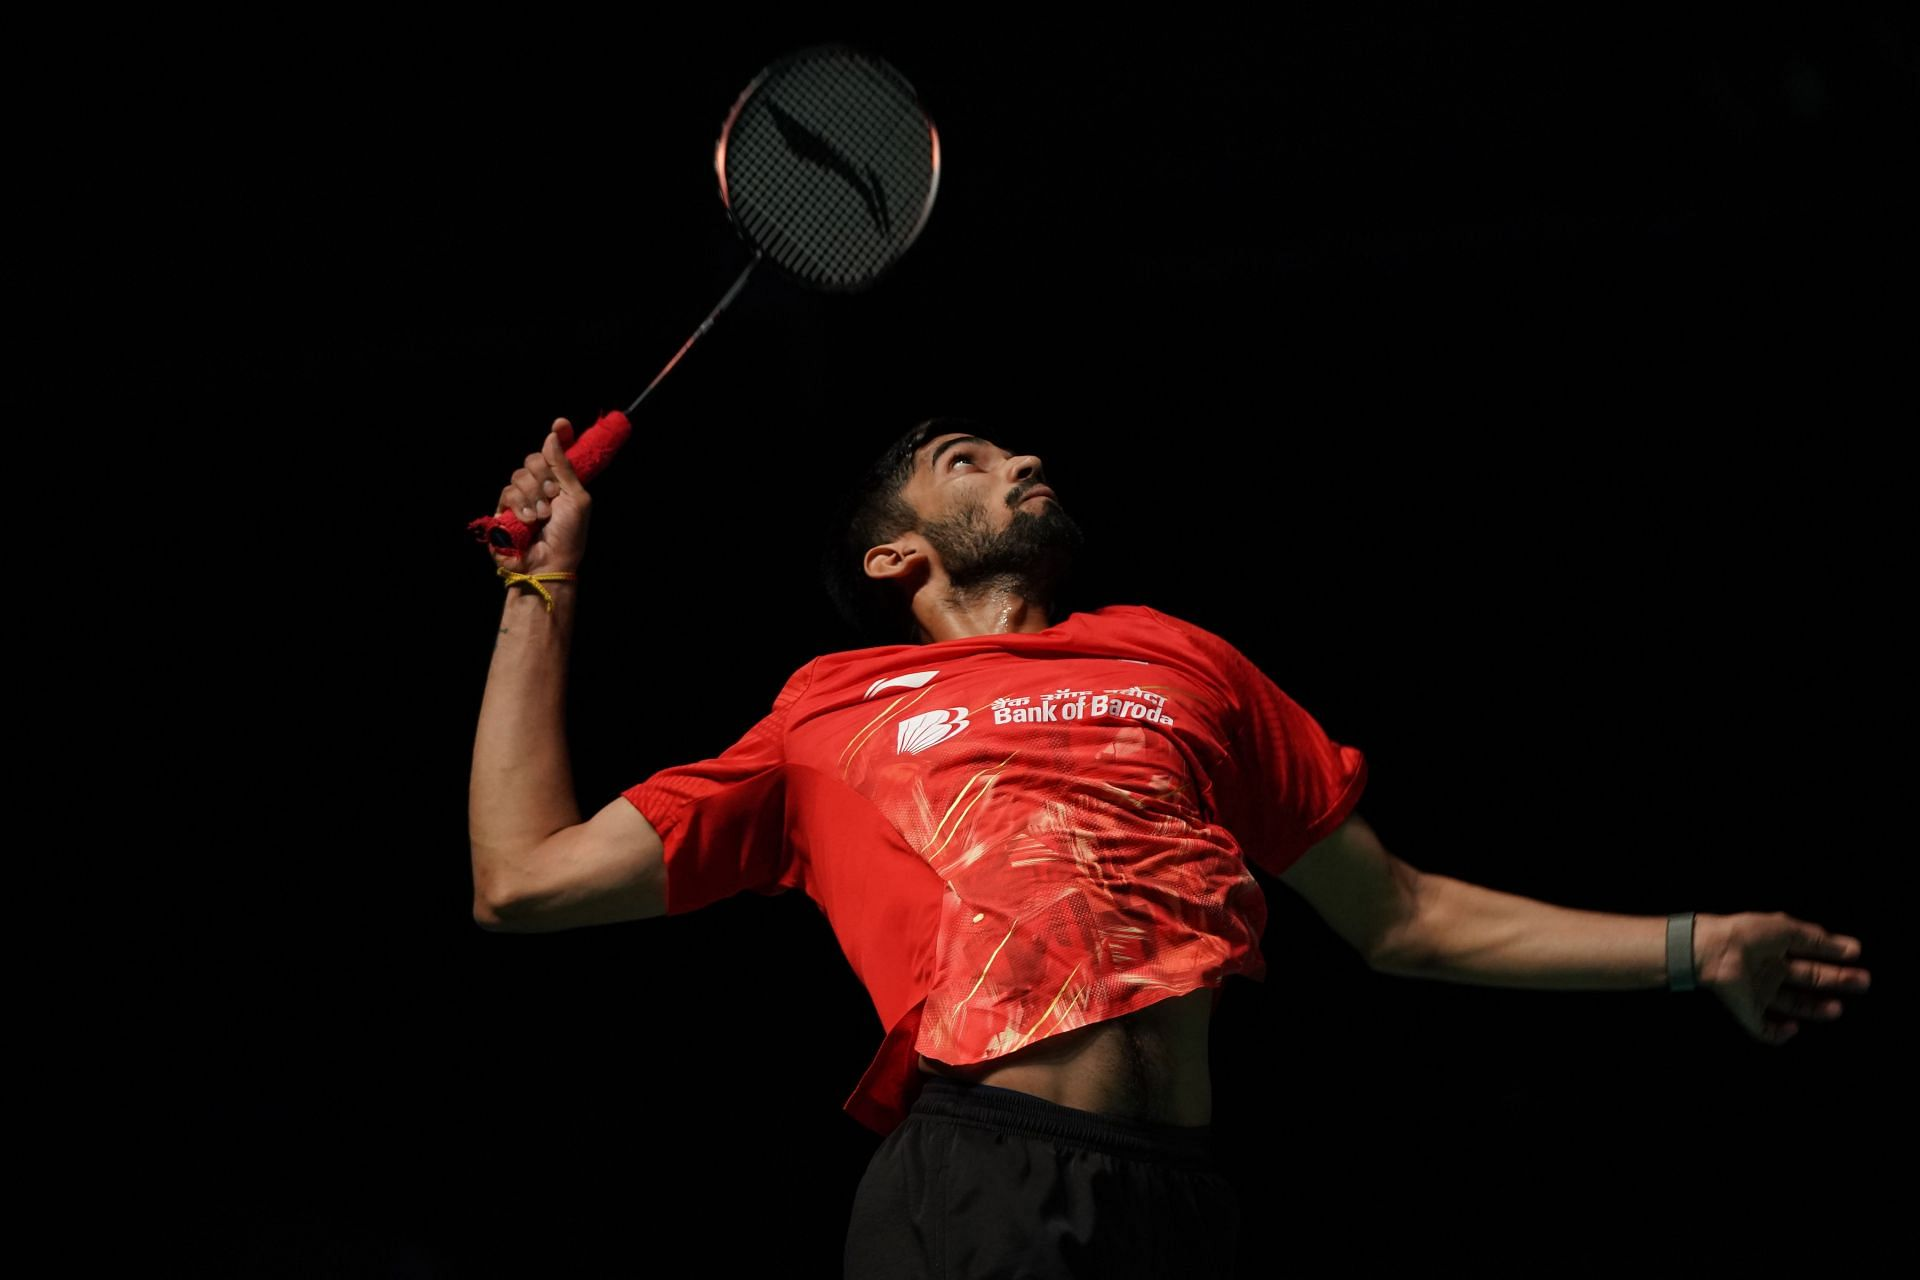 India's Kidambi Srikanth in action.